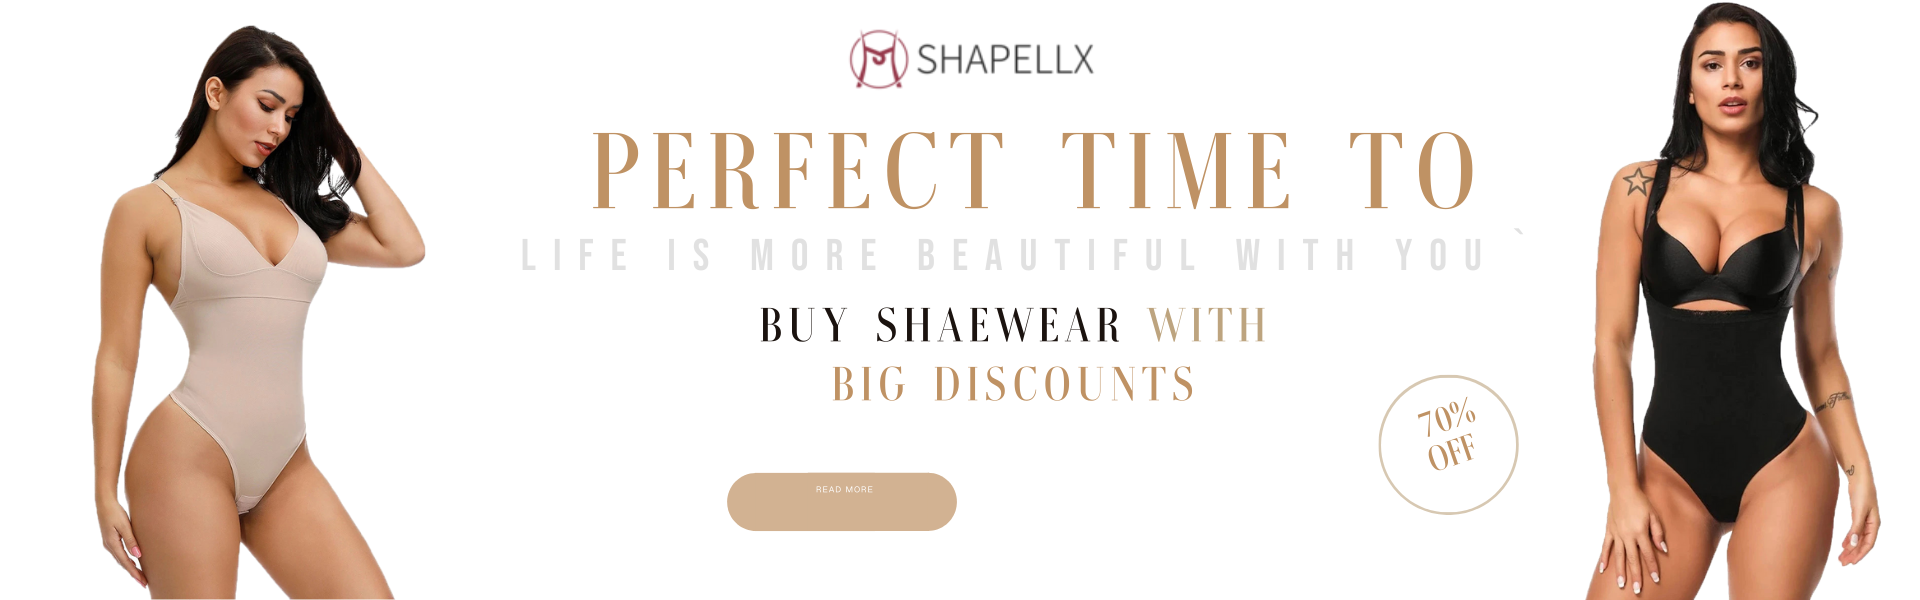 Now is Perfect Time Buy Shapewear with Big Discount - Mother's Day Sale